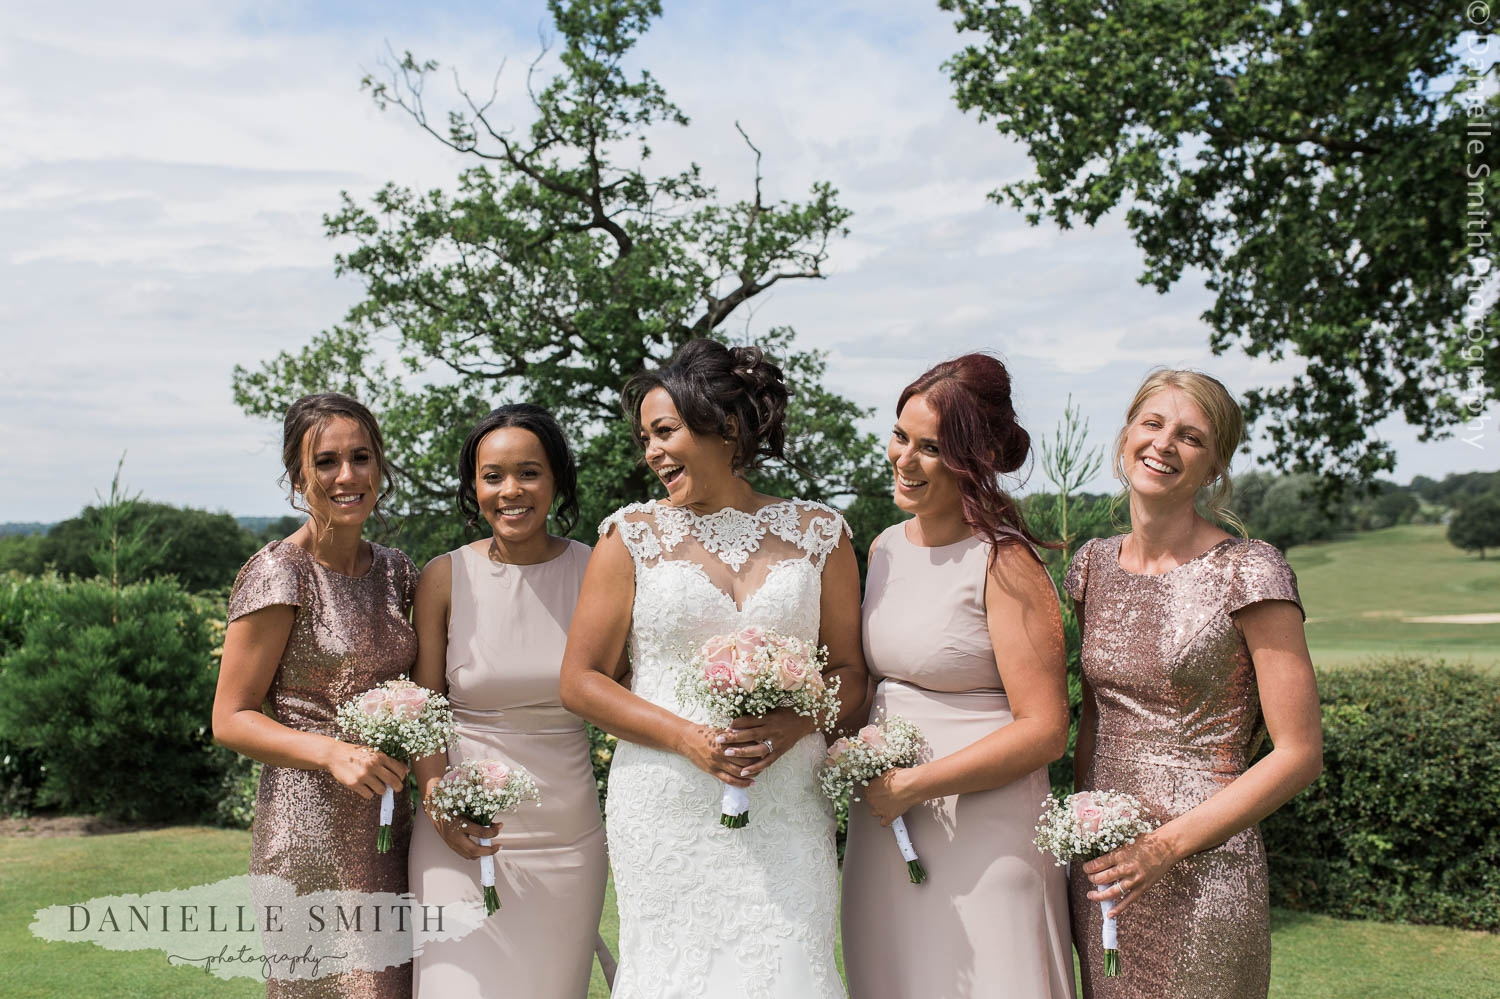 bride and bridesmaids in blush pink and sequin dresses